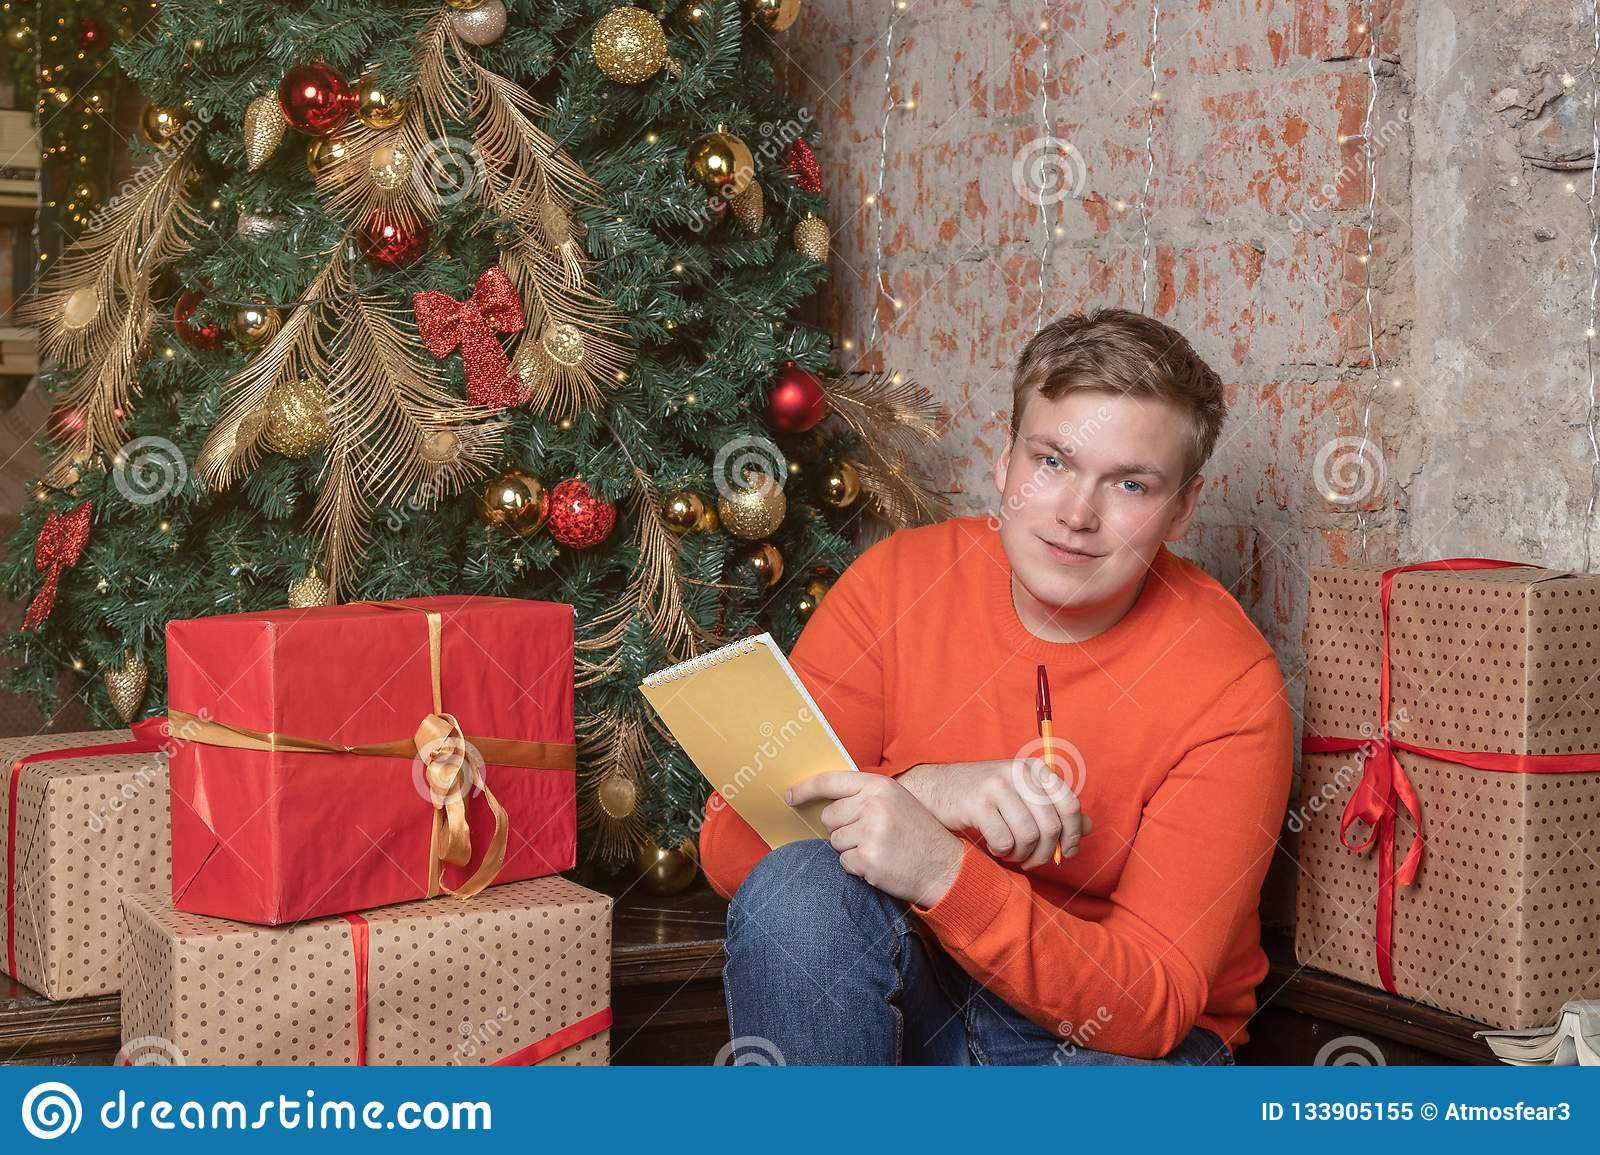 Handsome guy is writing a letter to Santa sitting under the tree surrounded by boxes of gifts. Christmas and gifts